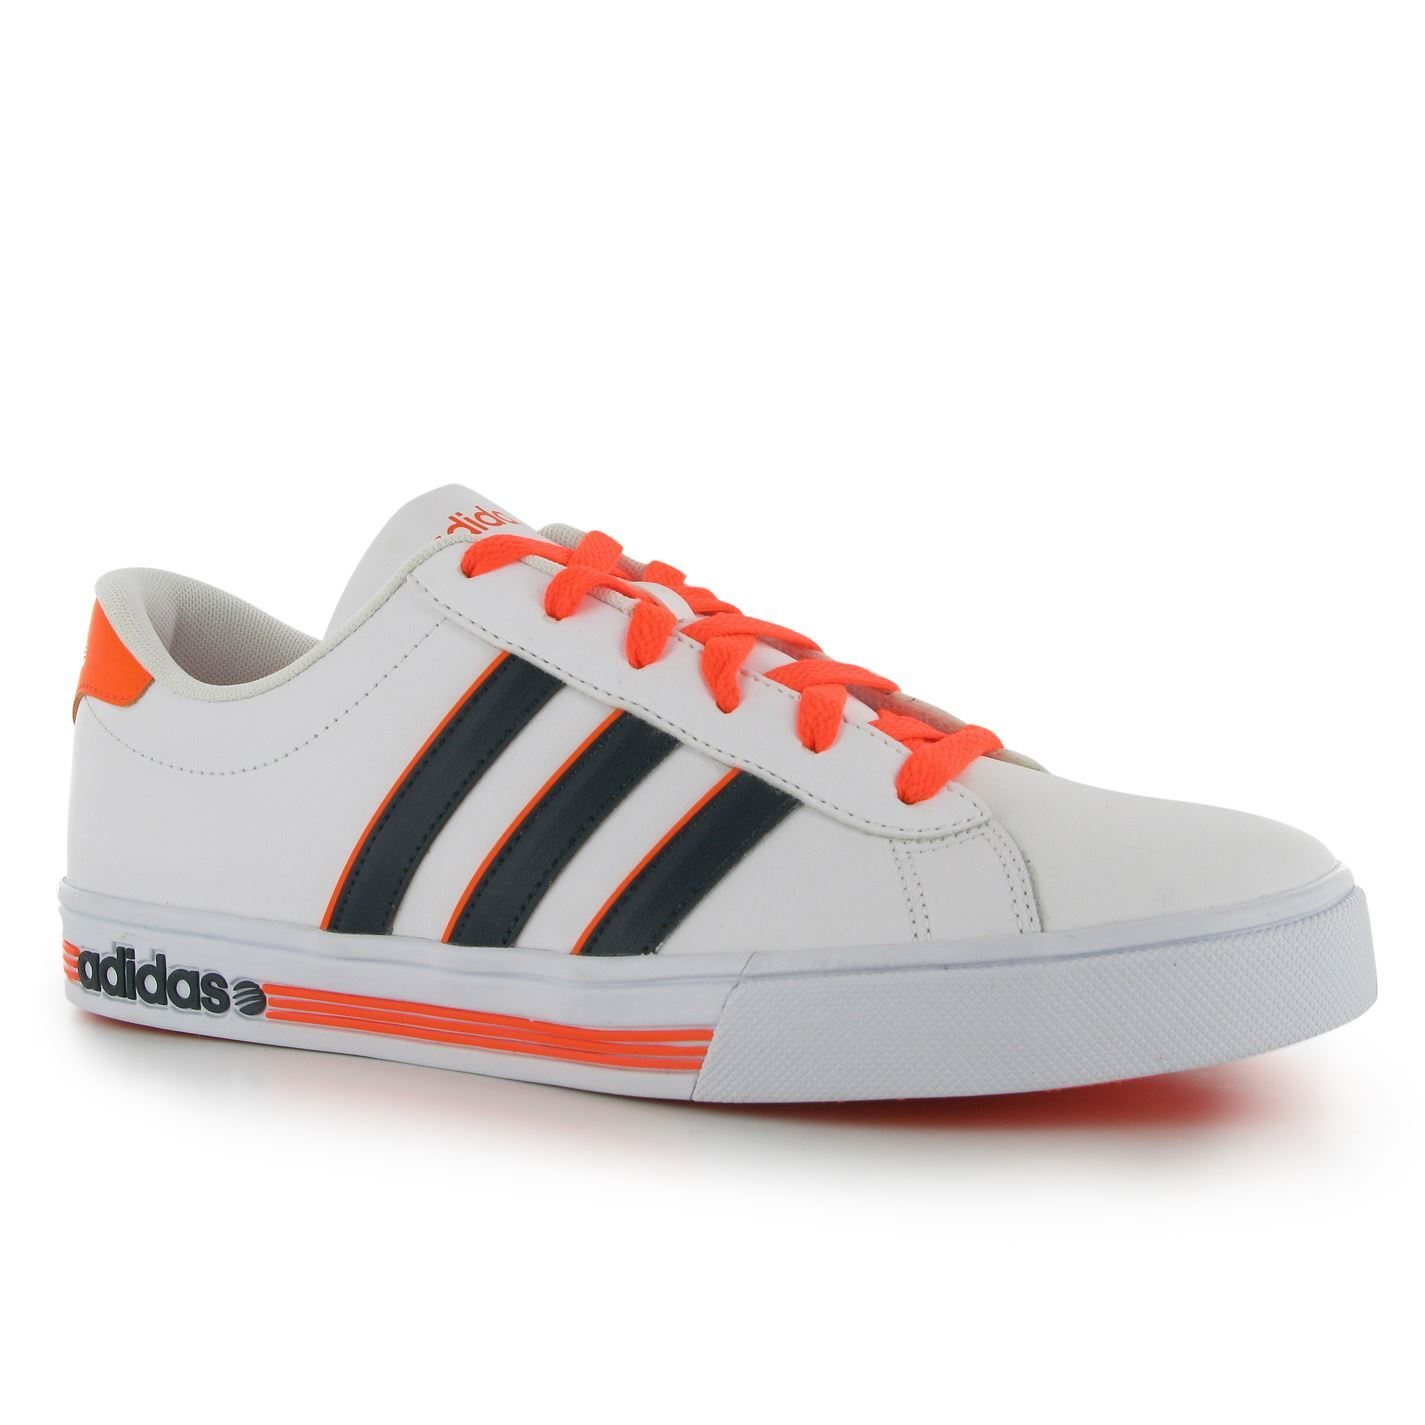 adidas shoes sports direct uk mandala2012 co uk